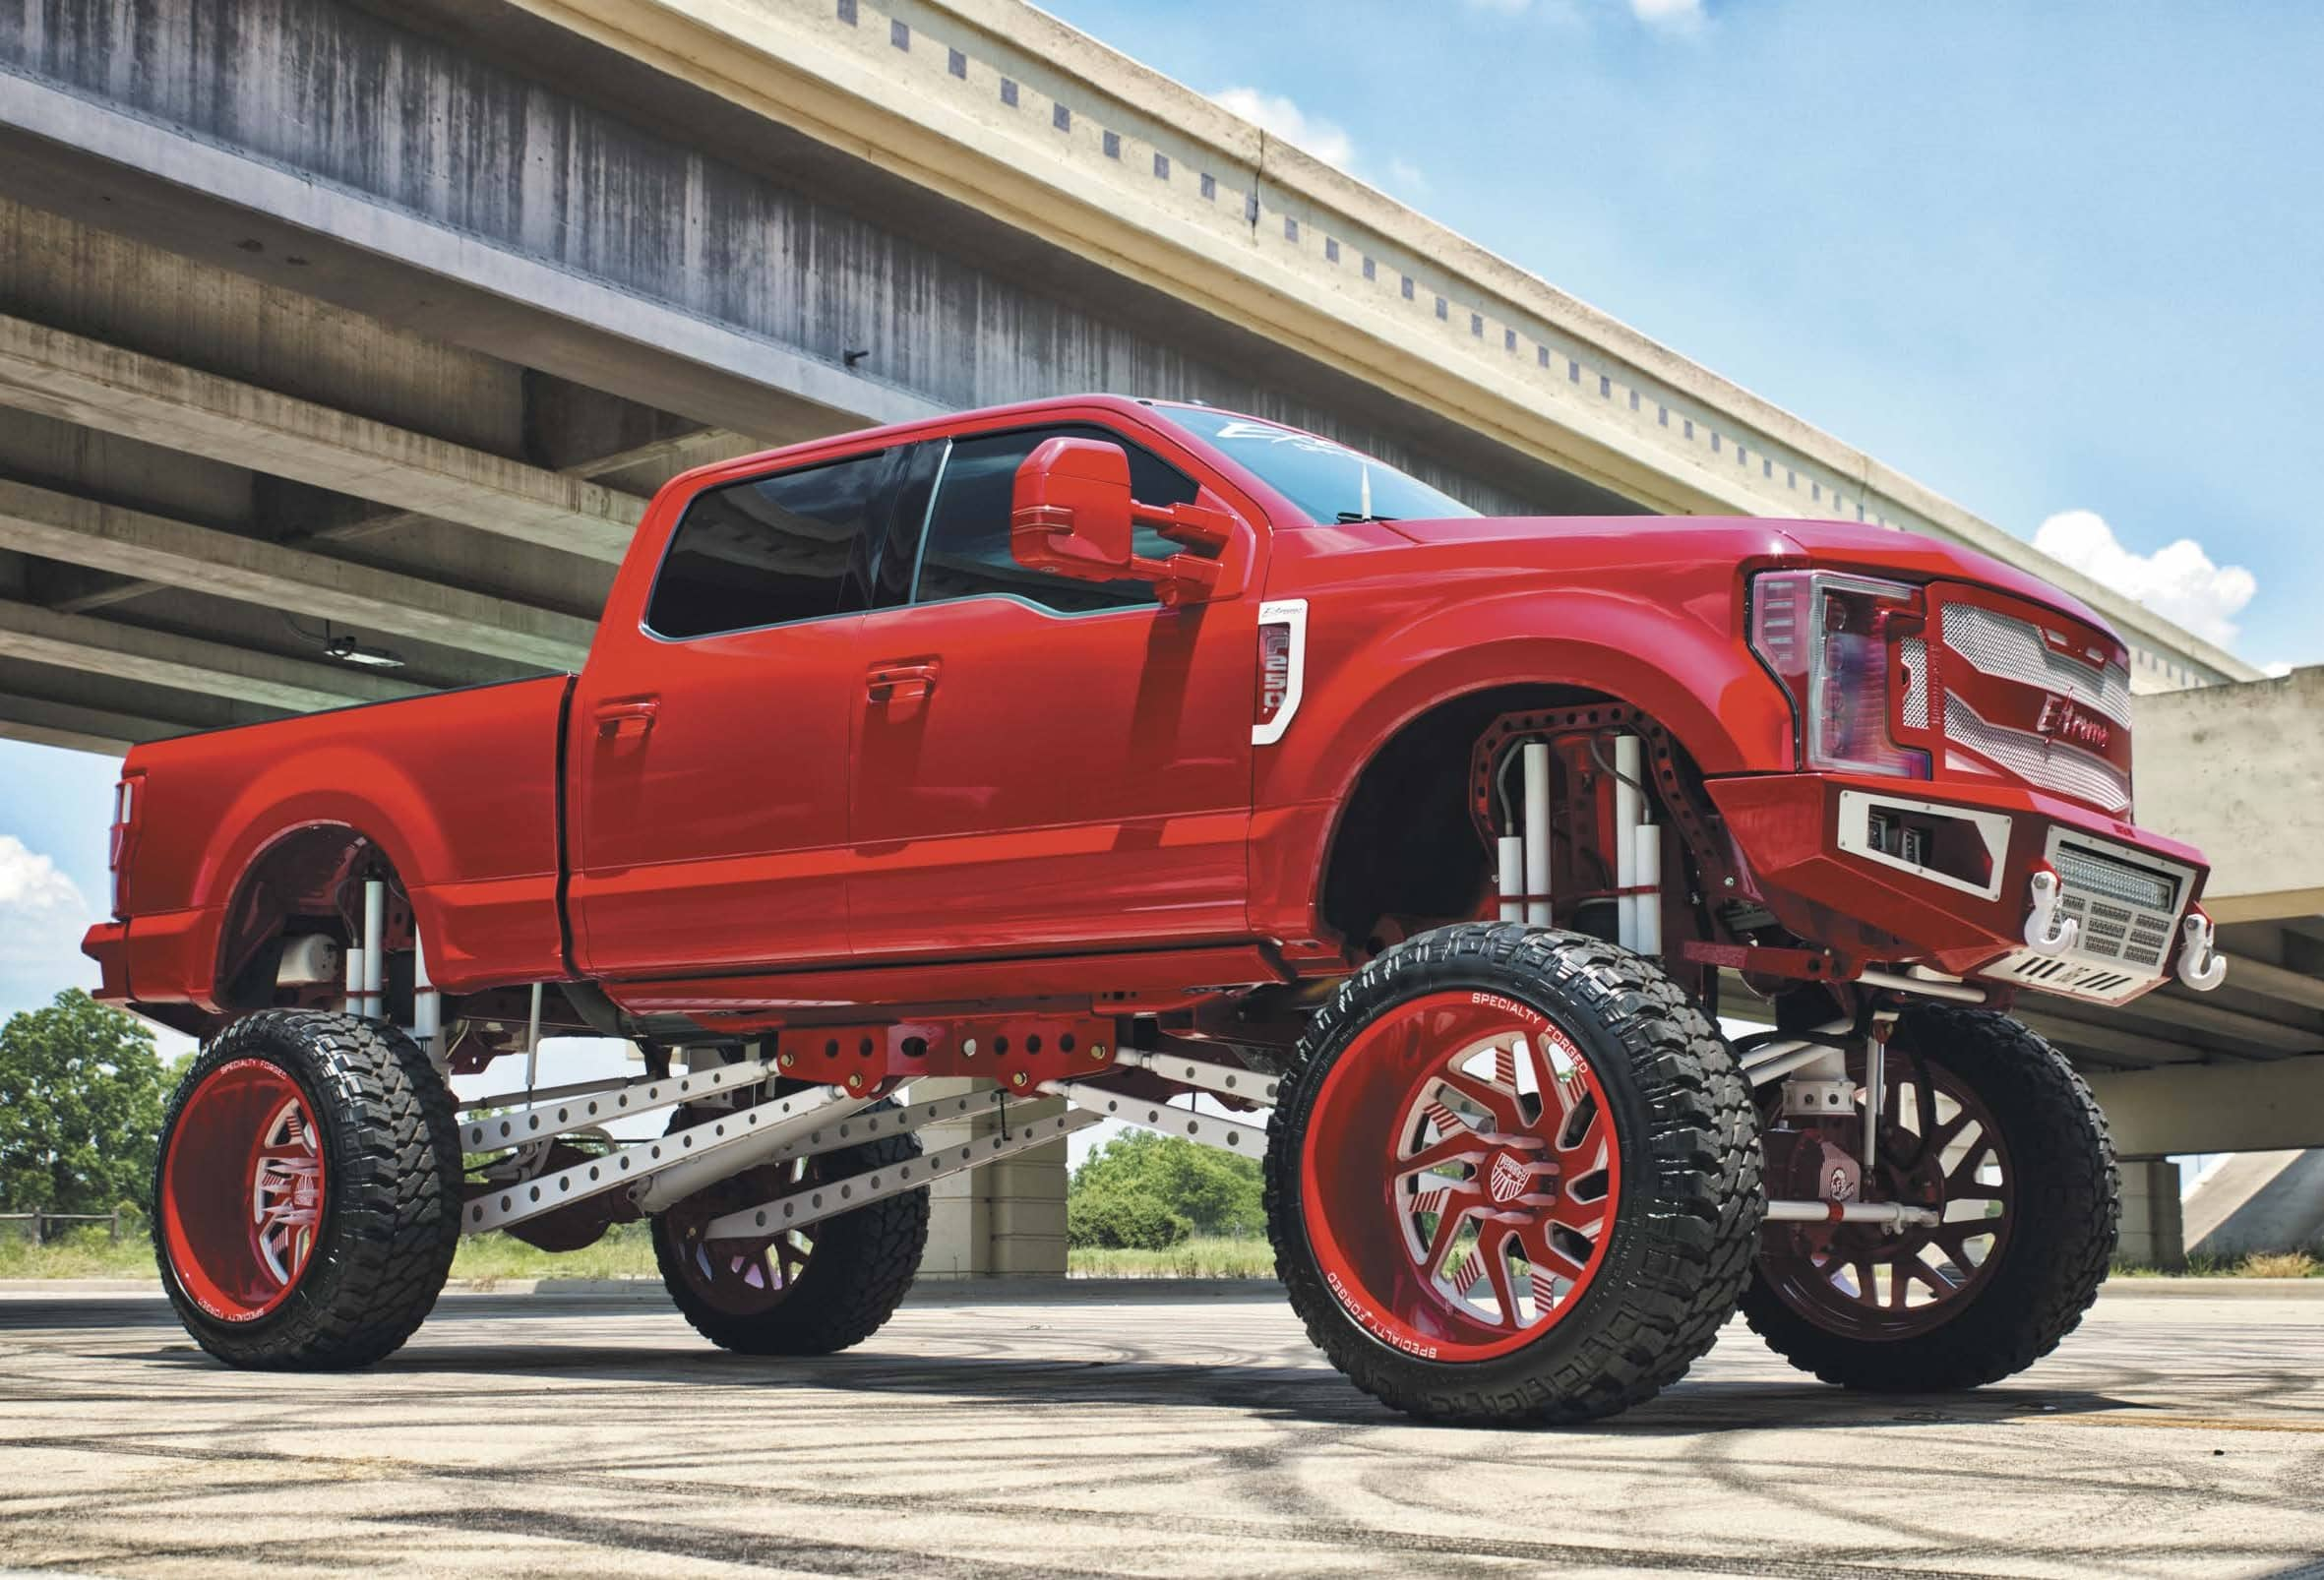 Jordan O'krinsky's Big, Red, Extreme 2018 Ford F-250